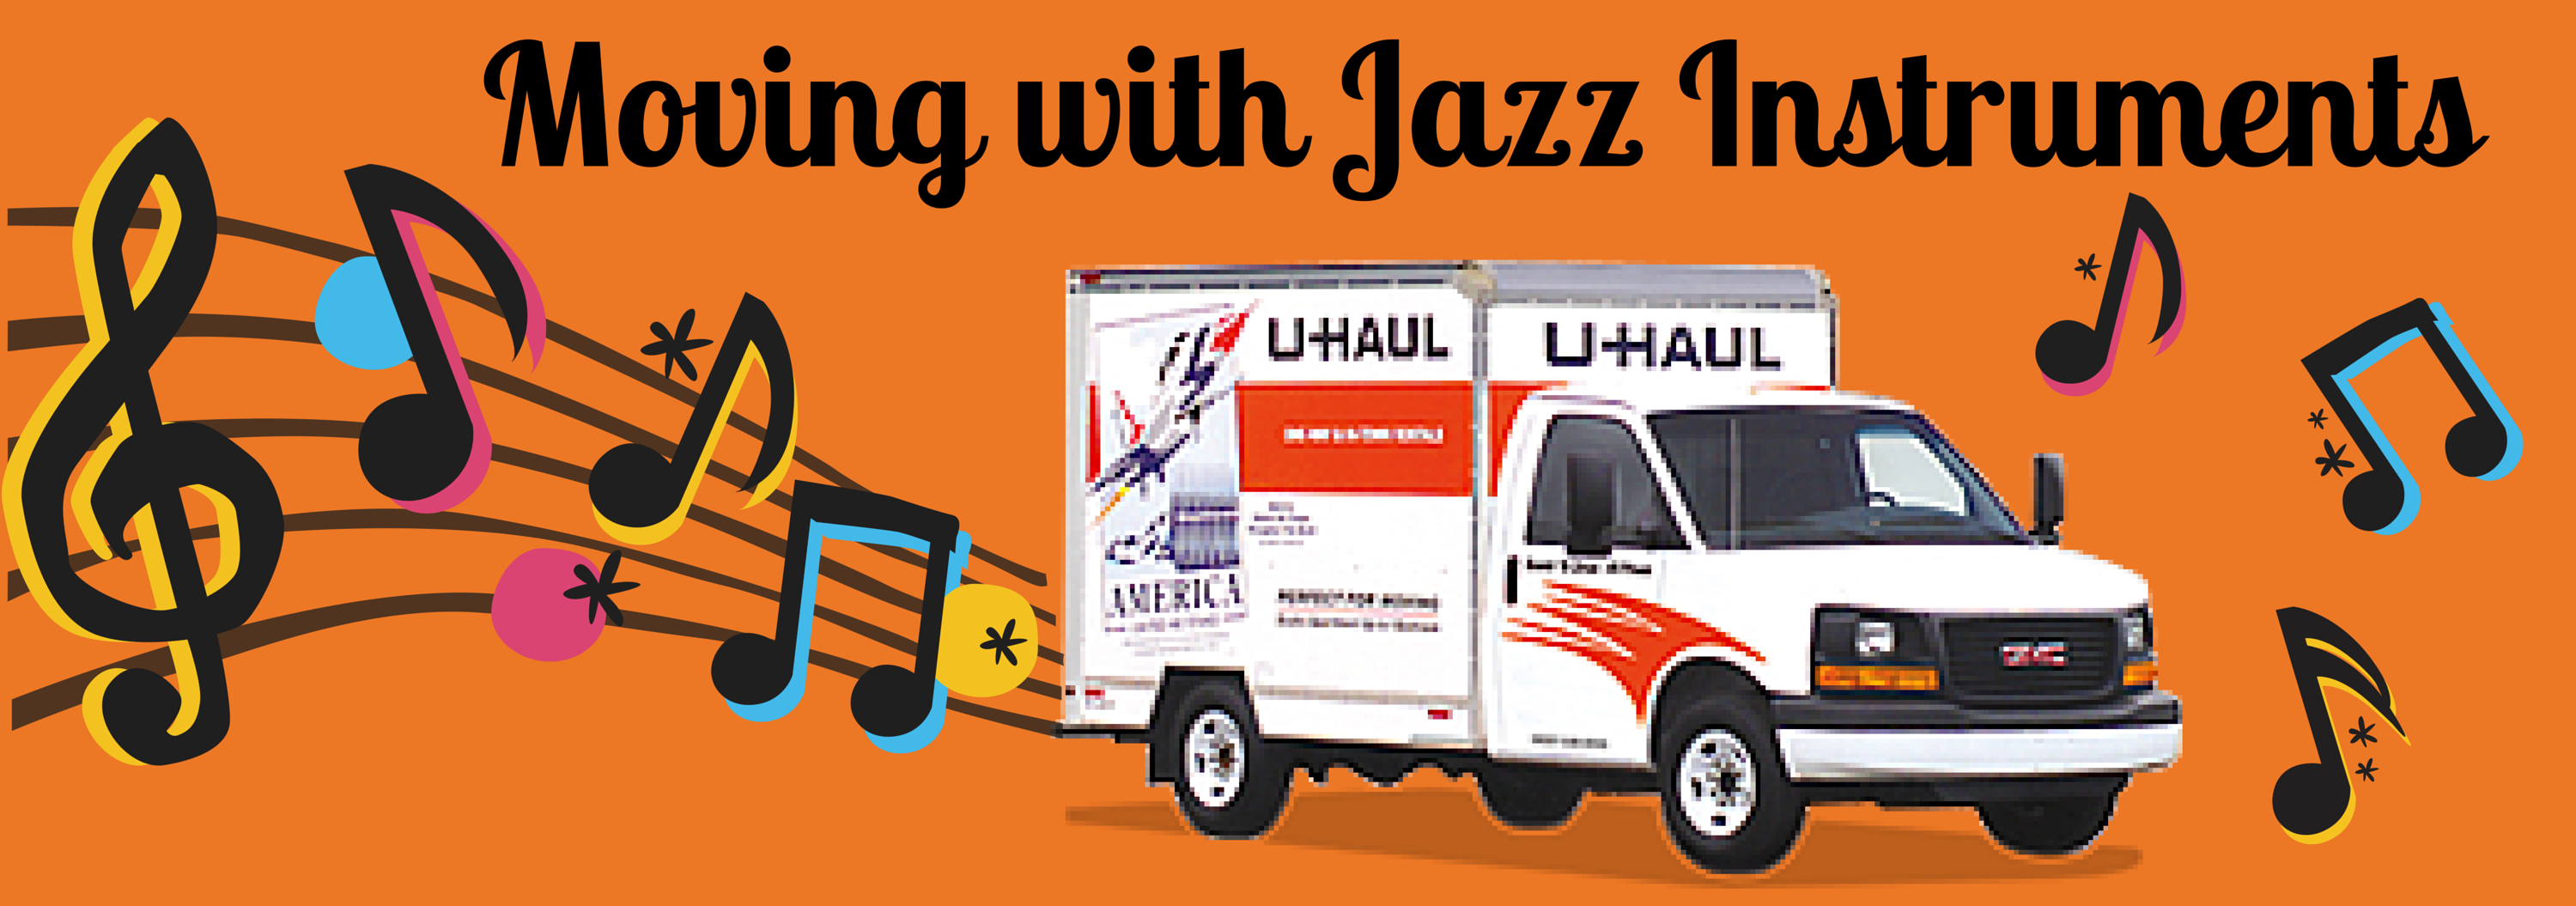 Moving with Musical Instruments